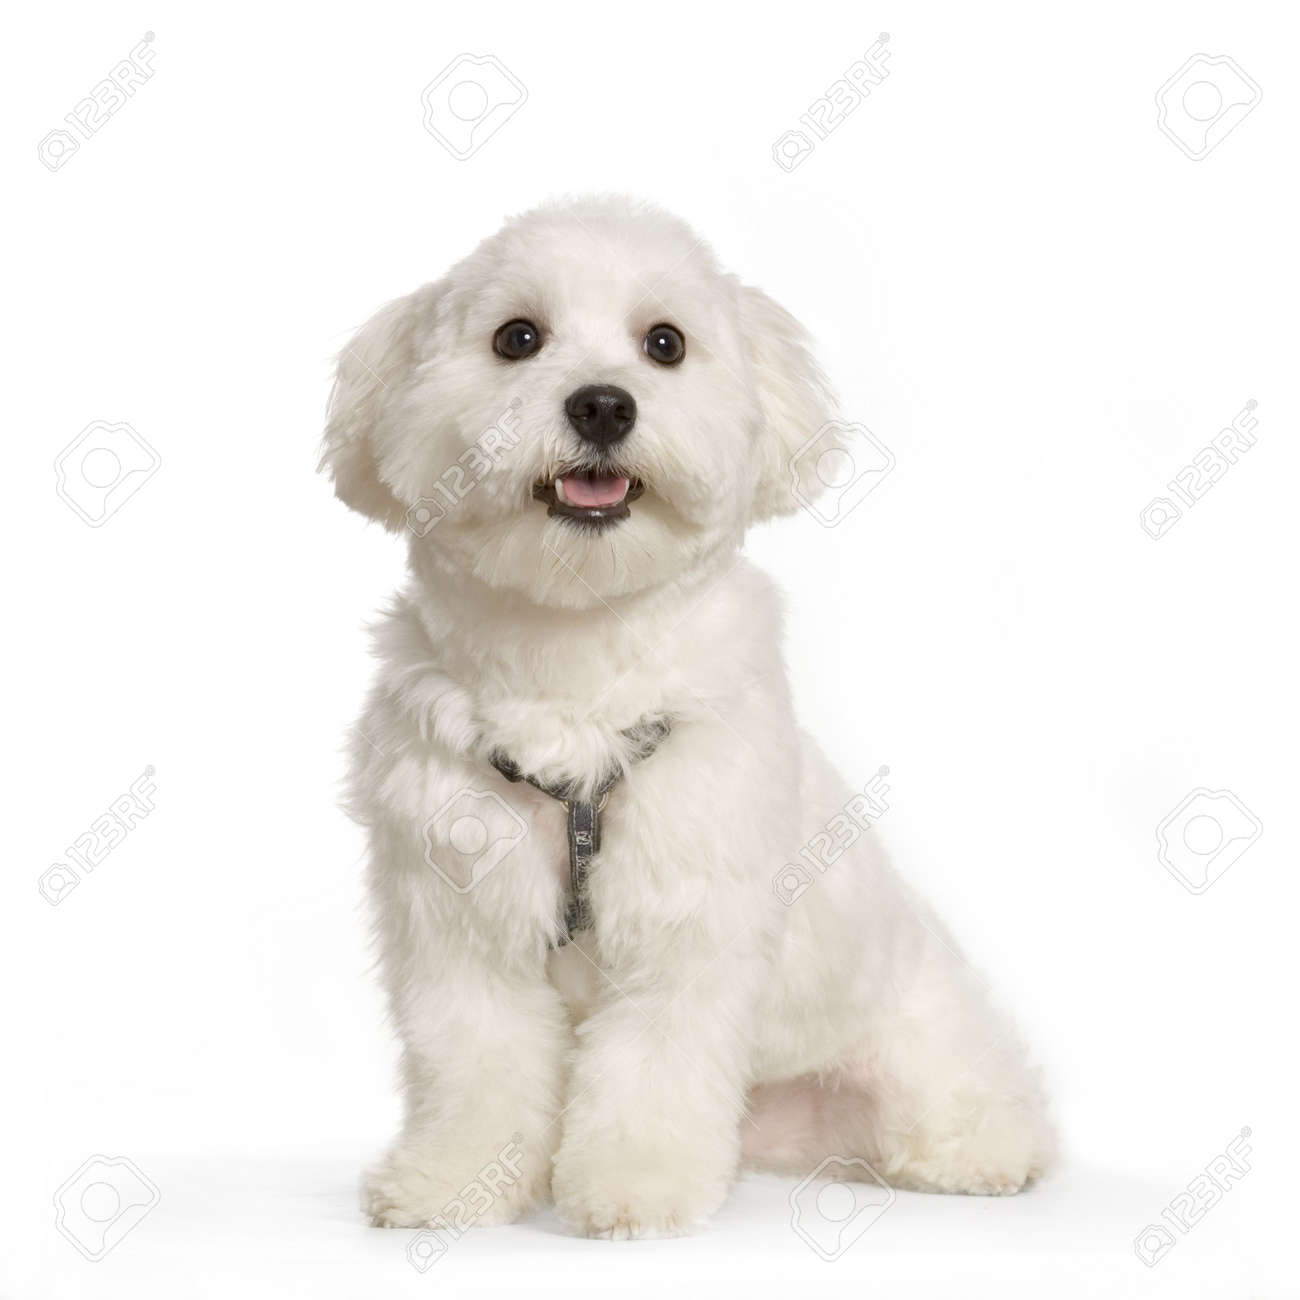 maltese dog sitting in front of white background Stock Photo - 555579